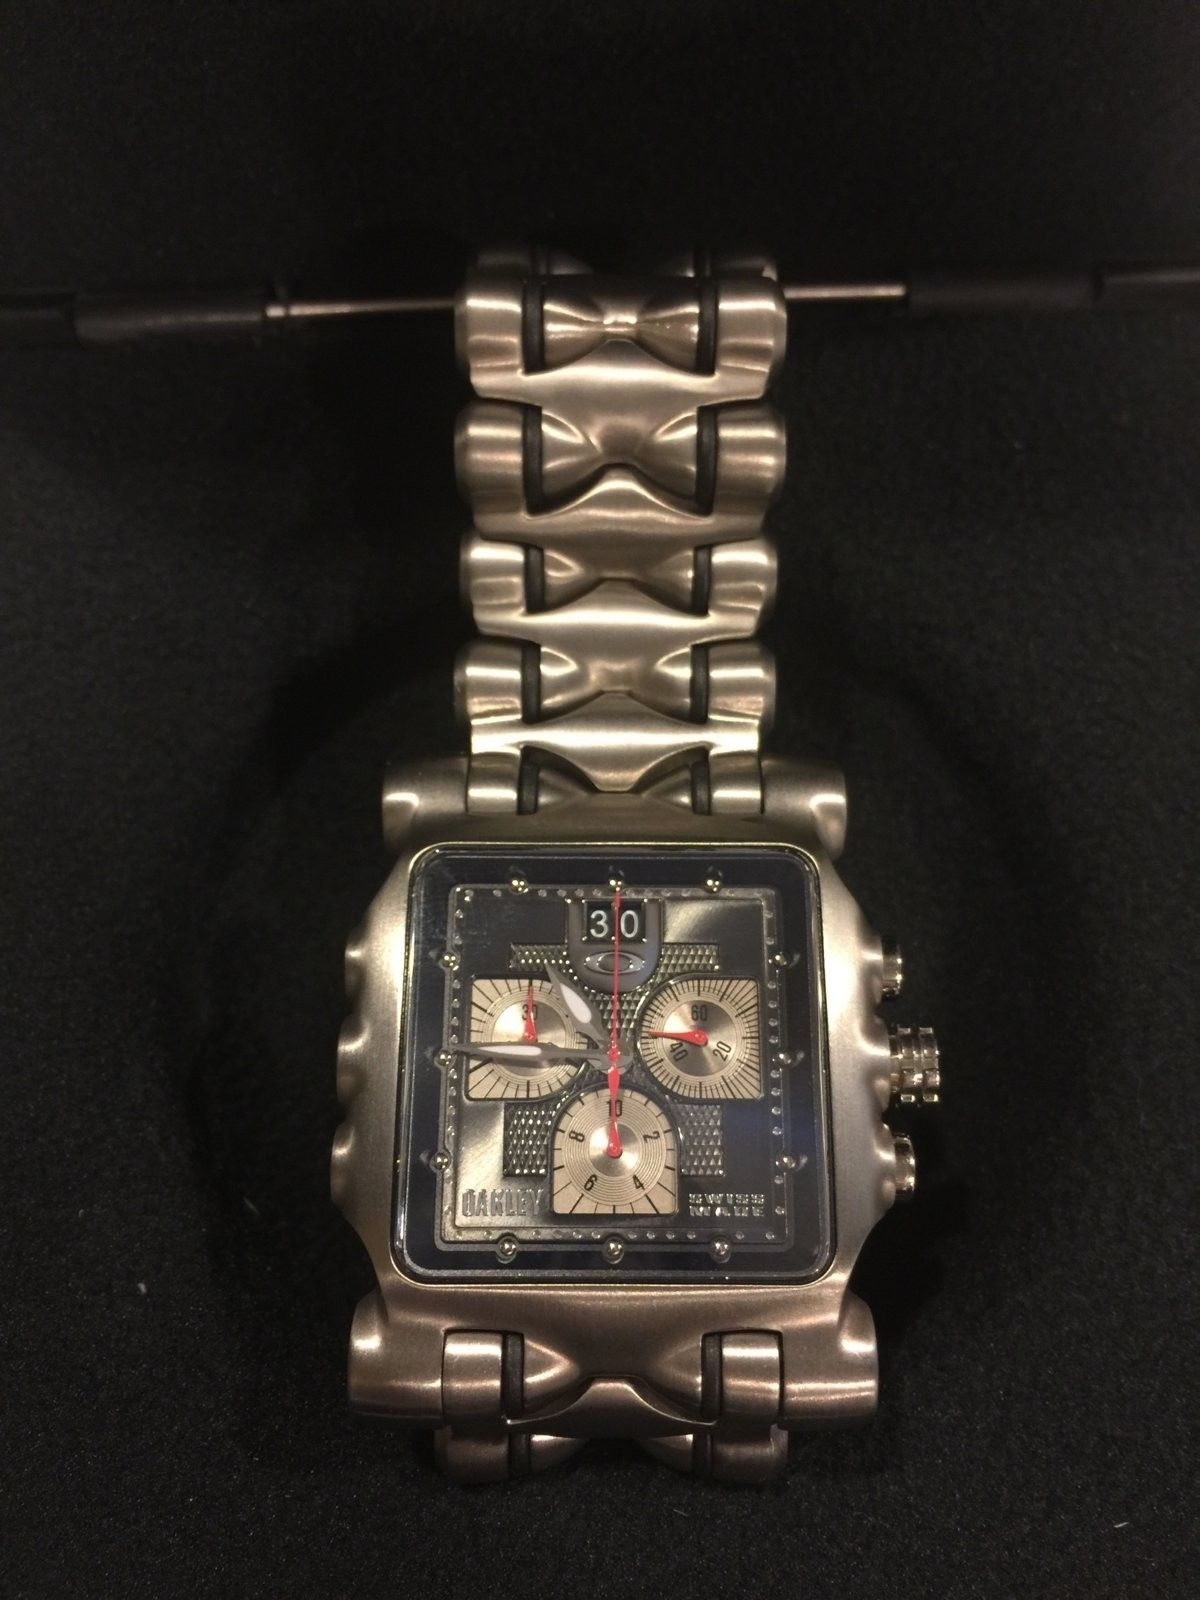 Minute machine black dial 720 shipped - image.jpg